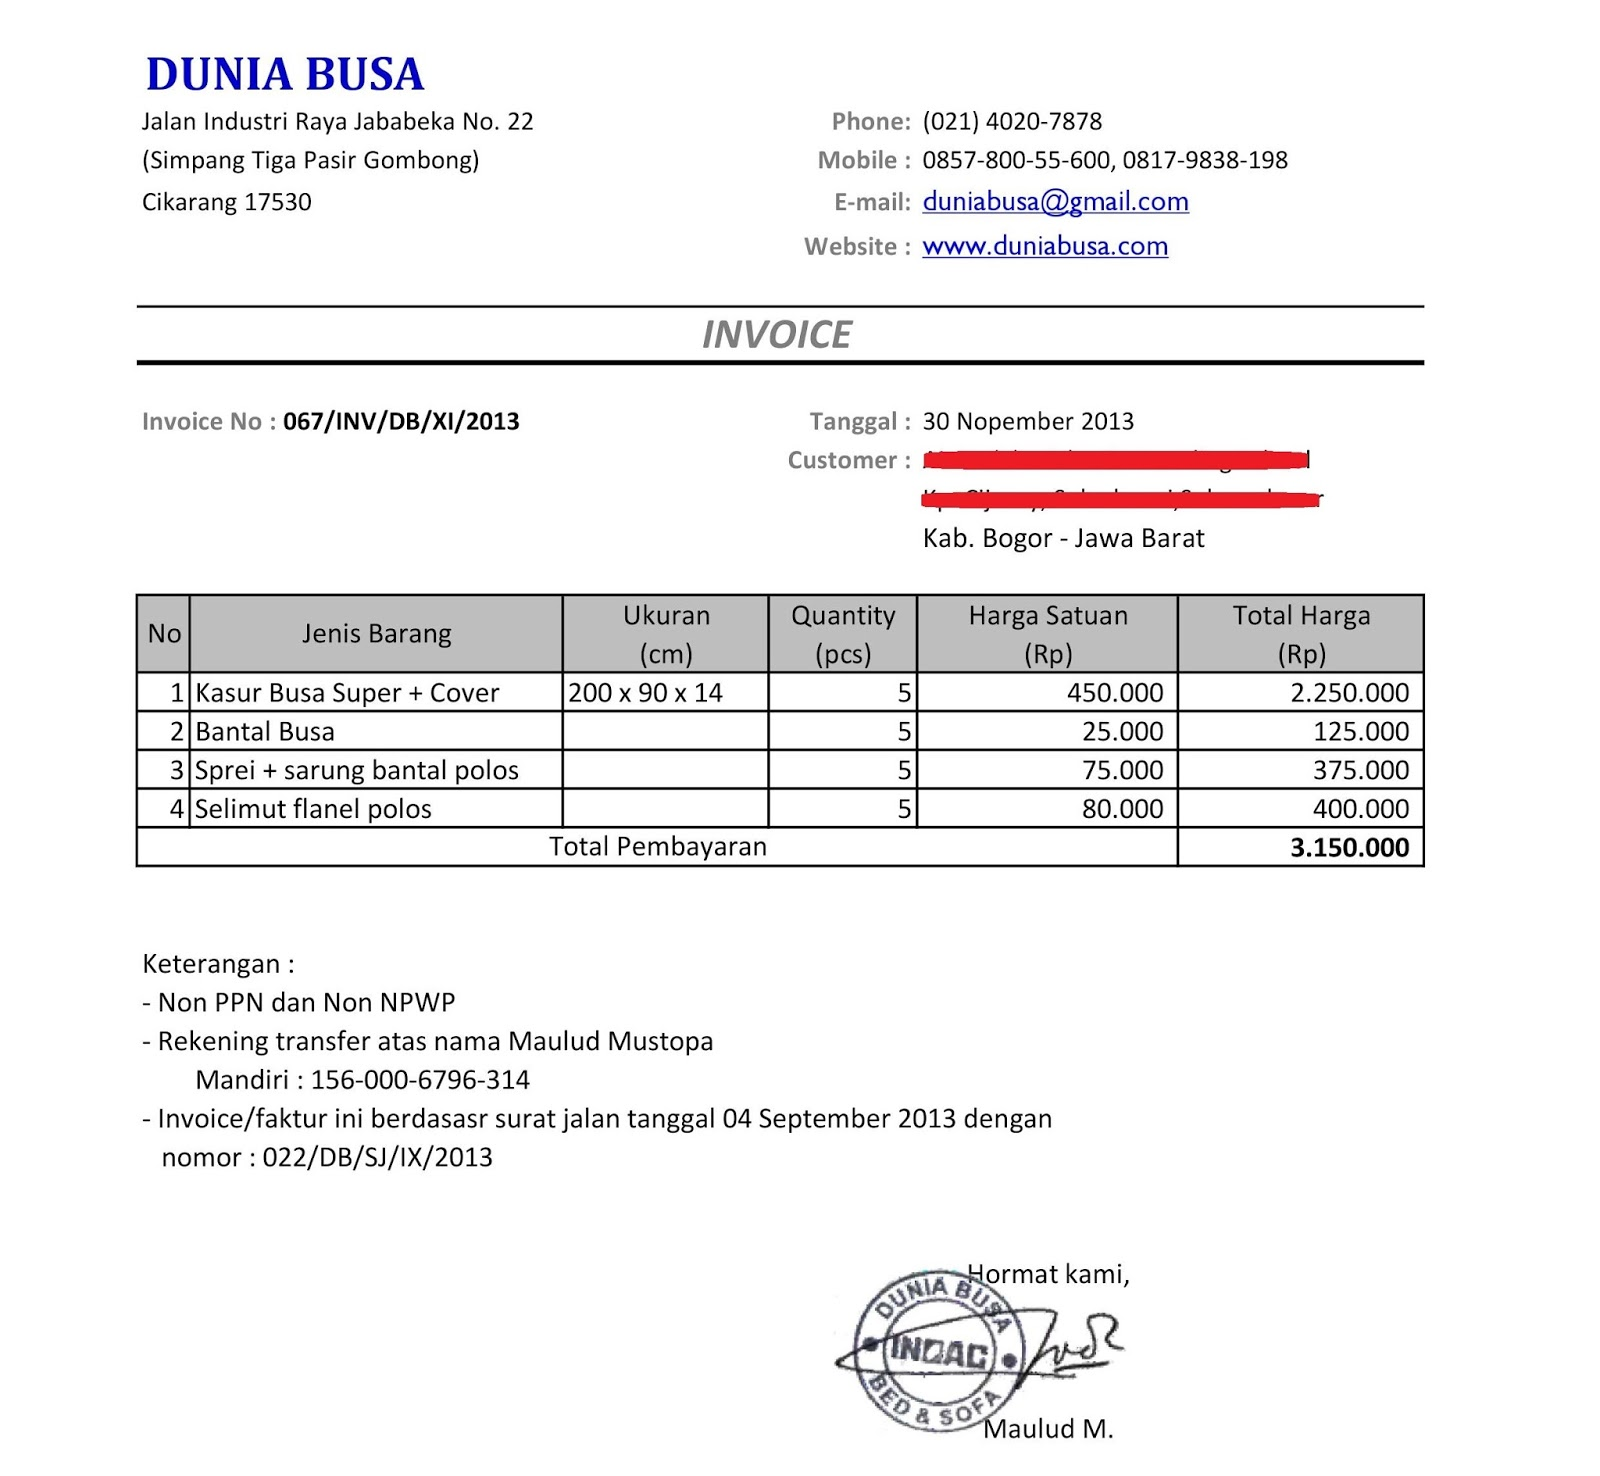 Centralasianshepherdus  Winsome Free Invoice Online  Create Invoice Online  Invoice Template  With Hot Contoh Format Invoice Atau Surat Tagihan  Brankas Arsip  Free Invoice Online With Divine Auto Invoice Price Also Performa Invoice Meaning In Addition How To Send Multiple Invoices In Quickbooks And Provide Invoice As Well As Contractor Invoice Format Additionally Billing Invoice Template Word From Sklepco With Centralasianshepherdus  Hot Free Invoice Online  Create Invoice Online  Invoice Template  With Divine Contoh Format Invoice Atau Surat Tagihan  Brankas Arsip  Free Invoice Online And Winsome Auto Invoice Price Also Performa Invoice Meaning In Addition How To Send Multiple Invoices In Quickbooks From Sklepco